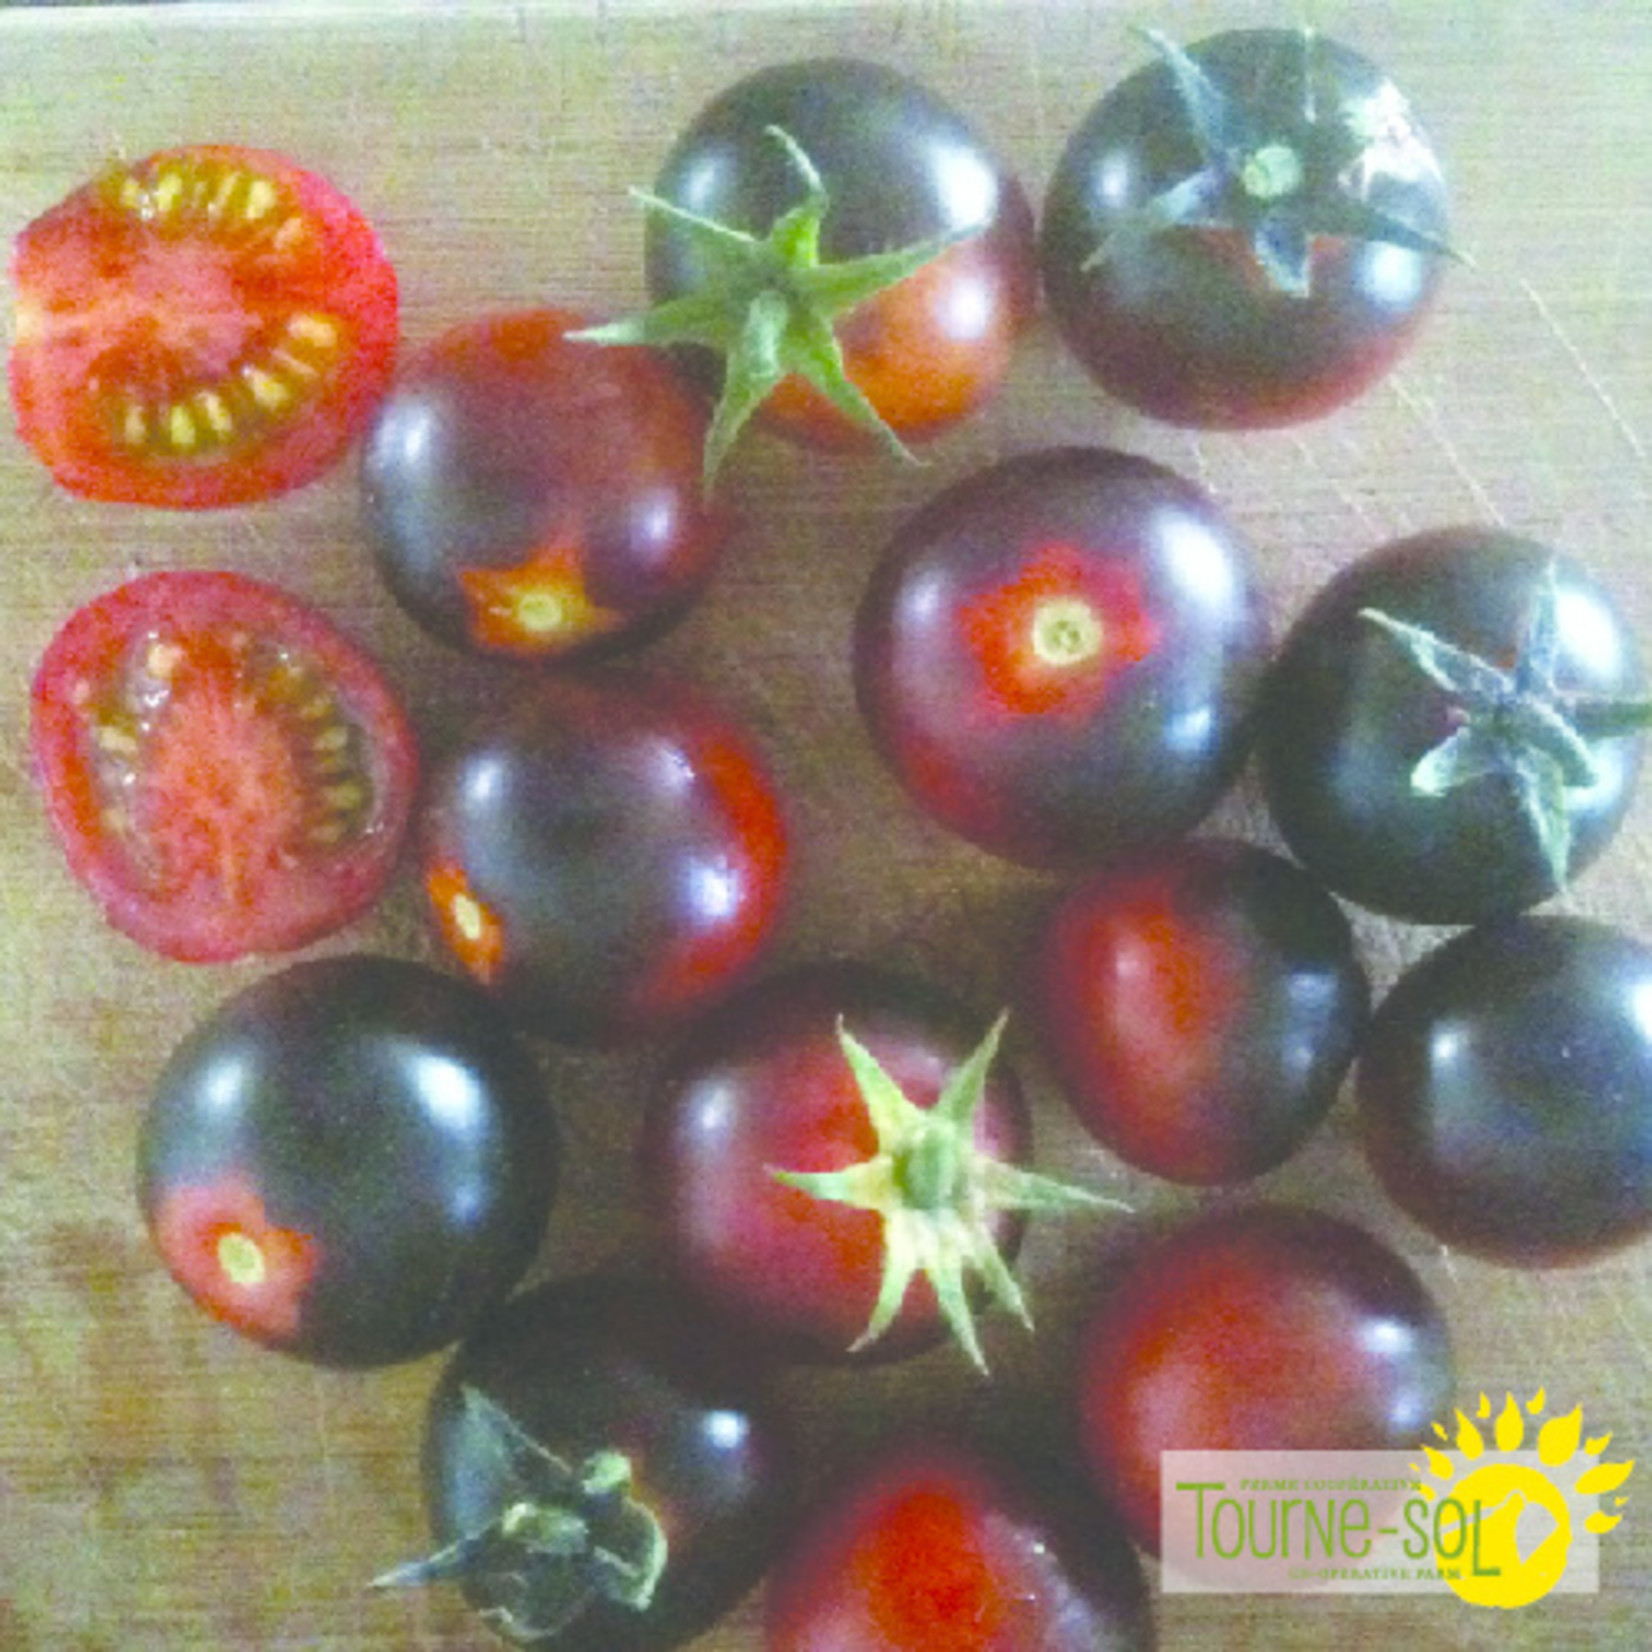 Tourne-Sol Tomate cerise Dancing with Smurfs